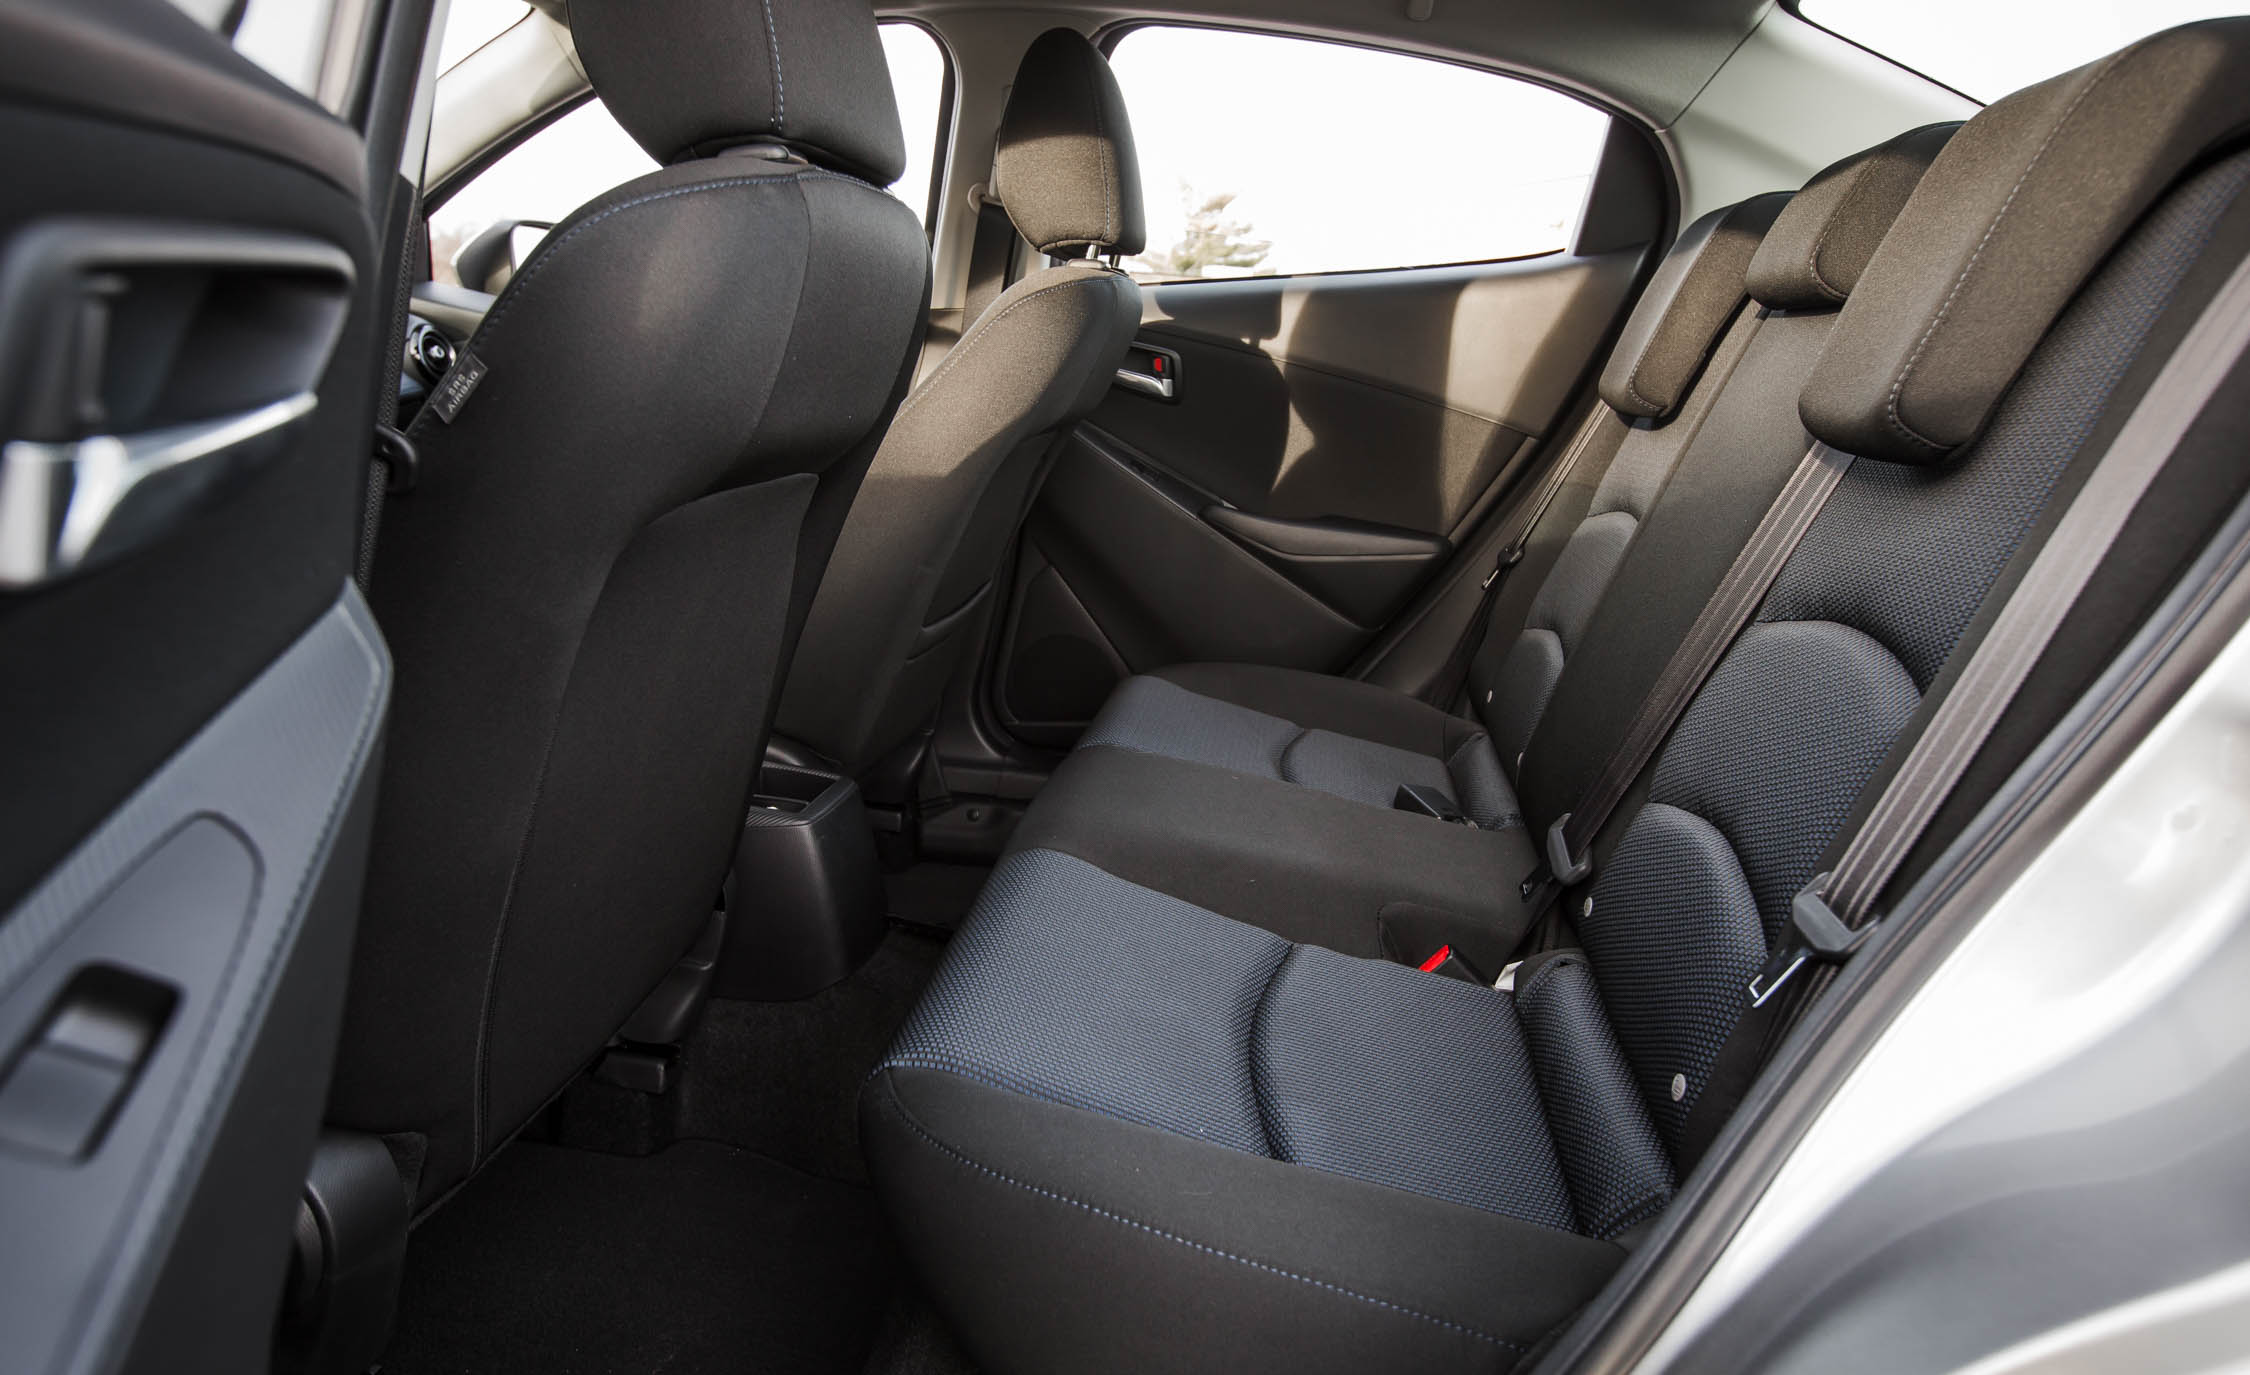 2016 Scion iA Interior View Rear